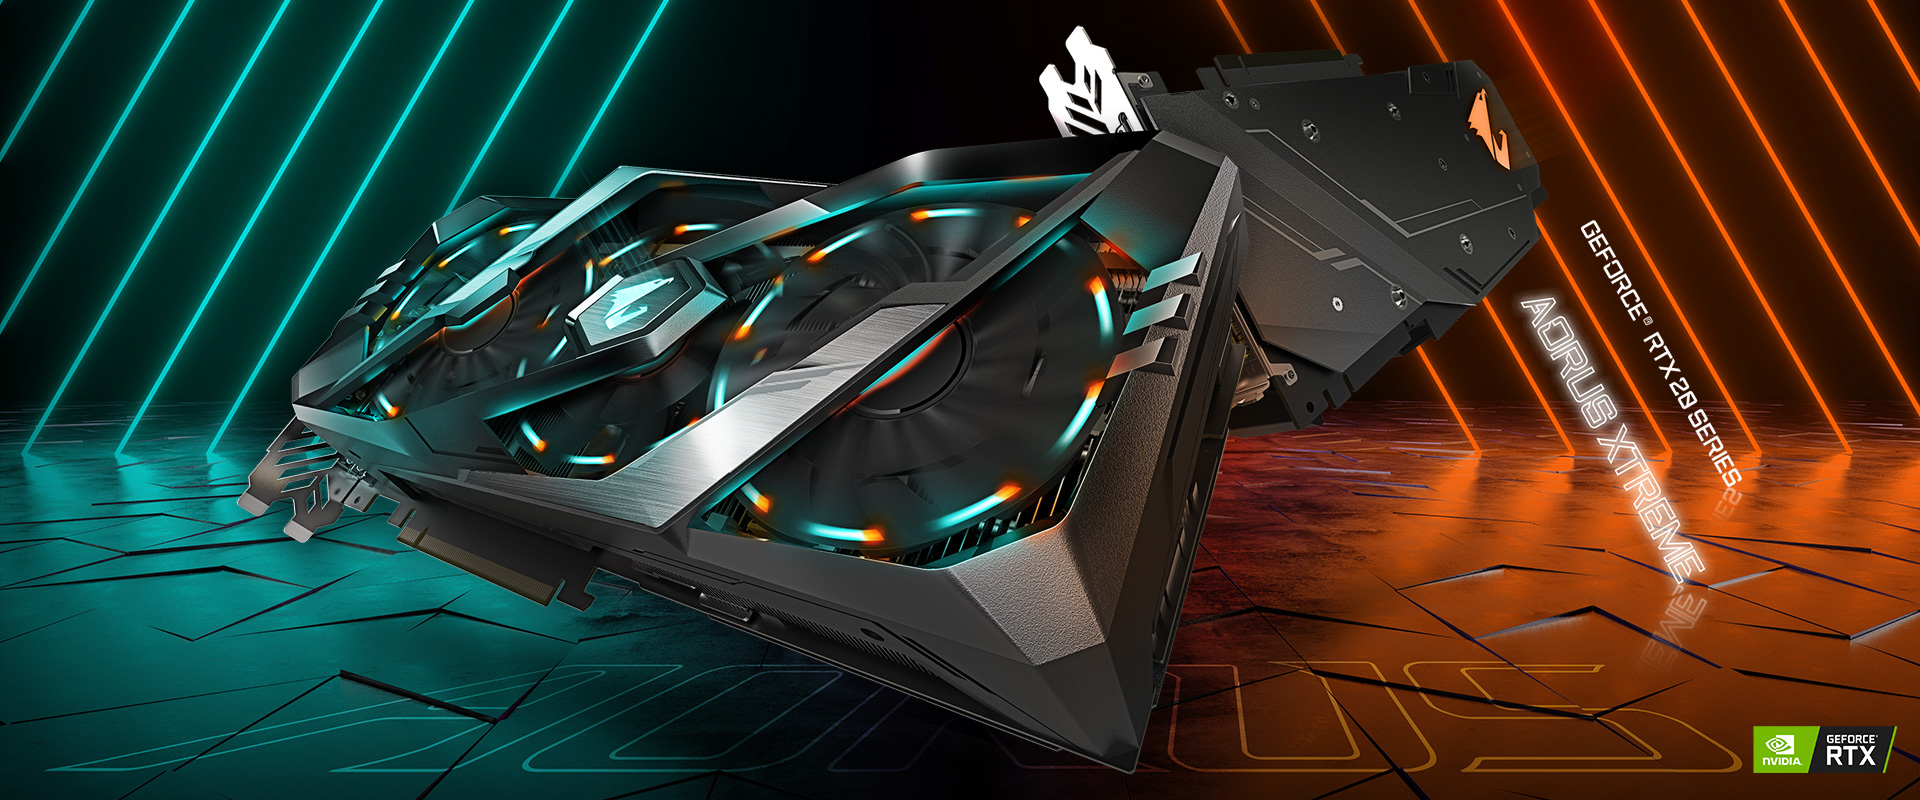 7 Things You Need to Know About GIGABYTE AORUS GeForce RTX 20 Series